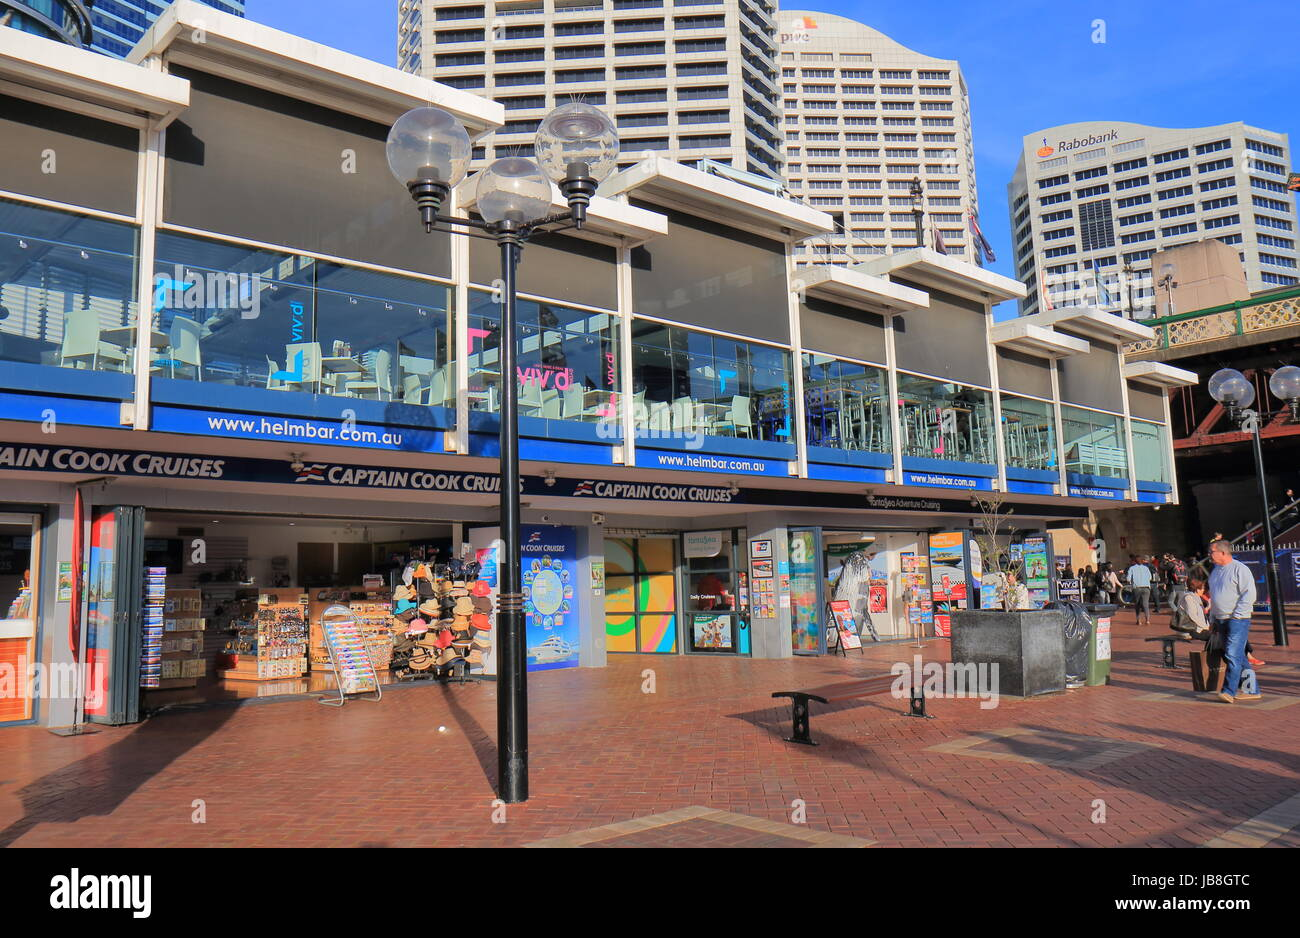 People visit Darling Harbour cruise ticket office in Sydney Australia. - Stock Image